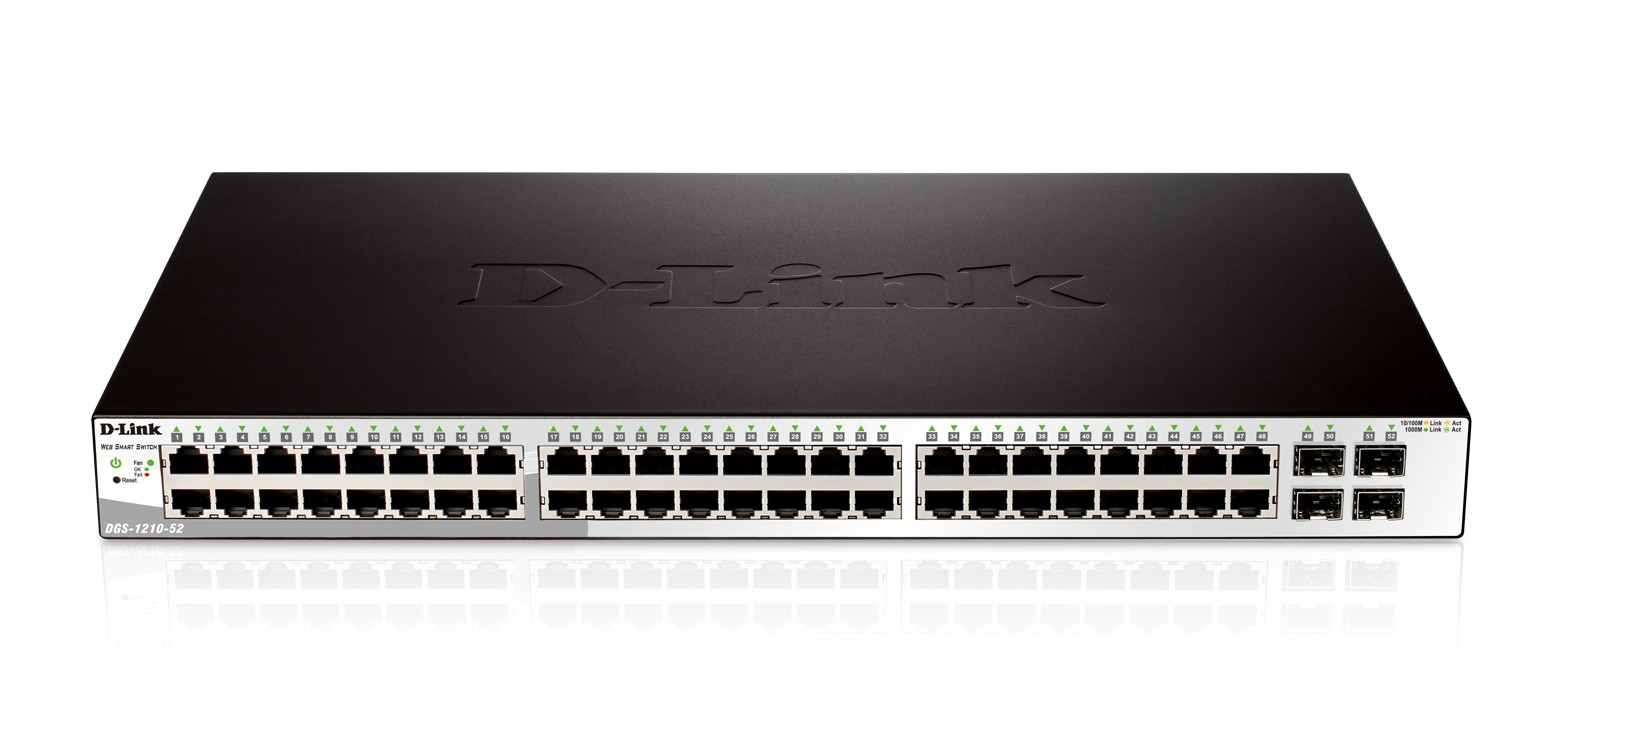 D-Link DGS-1210-52 switch Gestionado L2 Gigabit Ethernet (10/100/1000) Negro 1U